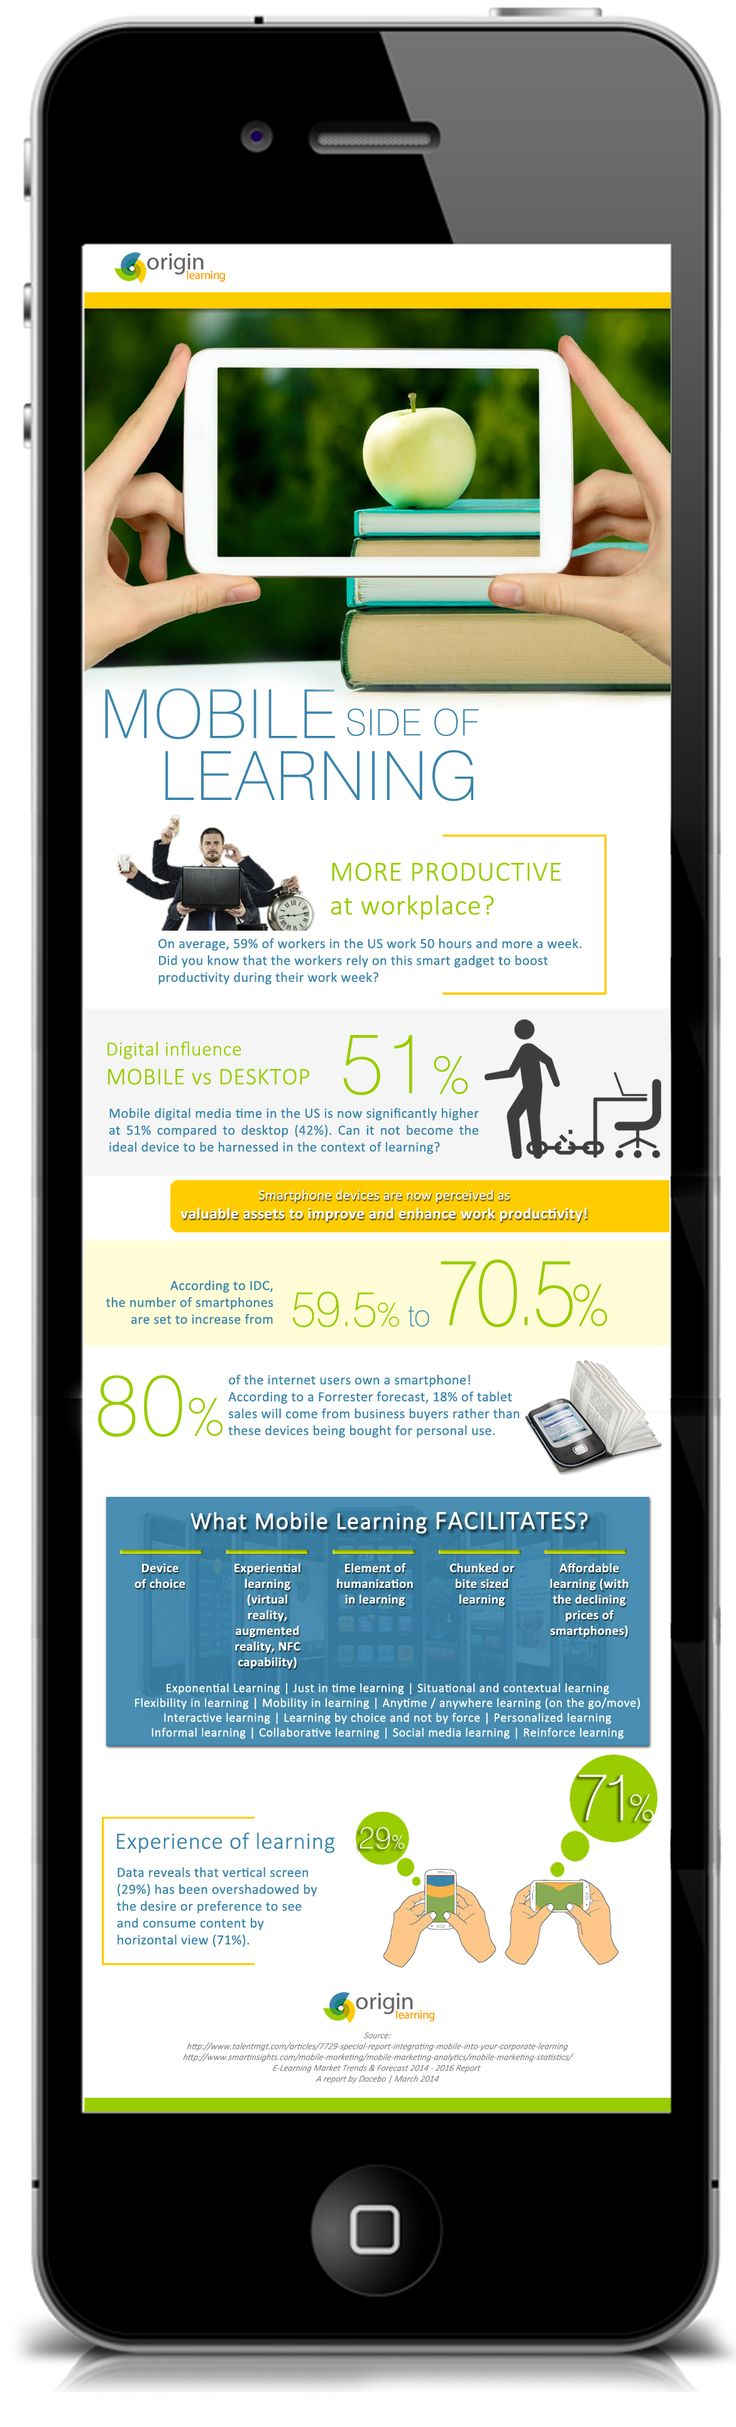 The Mobile Side of Learning Infographic - http://elearninginfographics.com/mobile-side-learning-infographic/